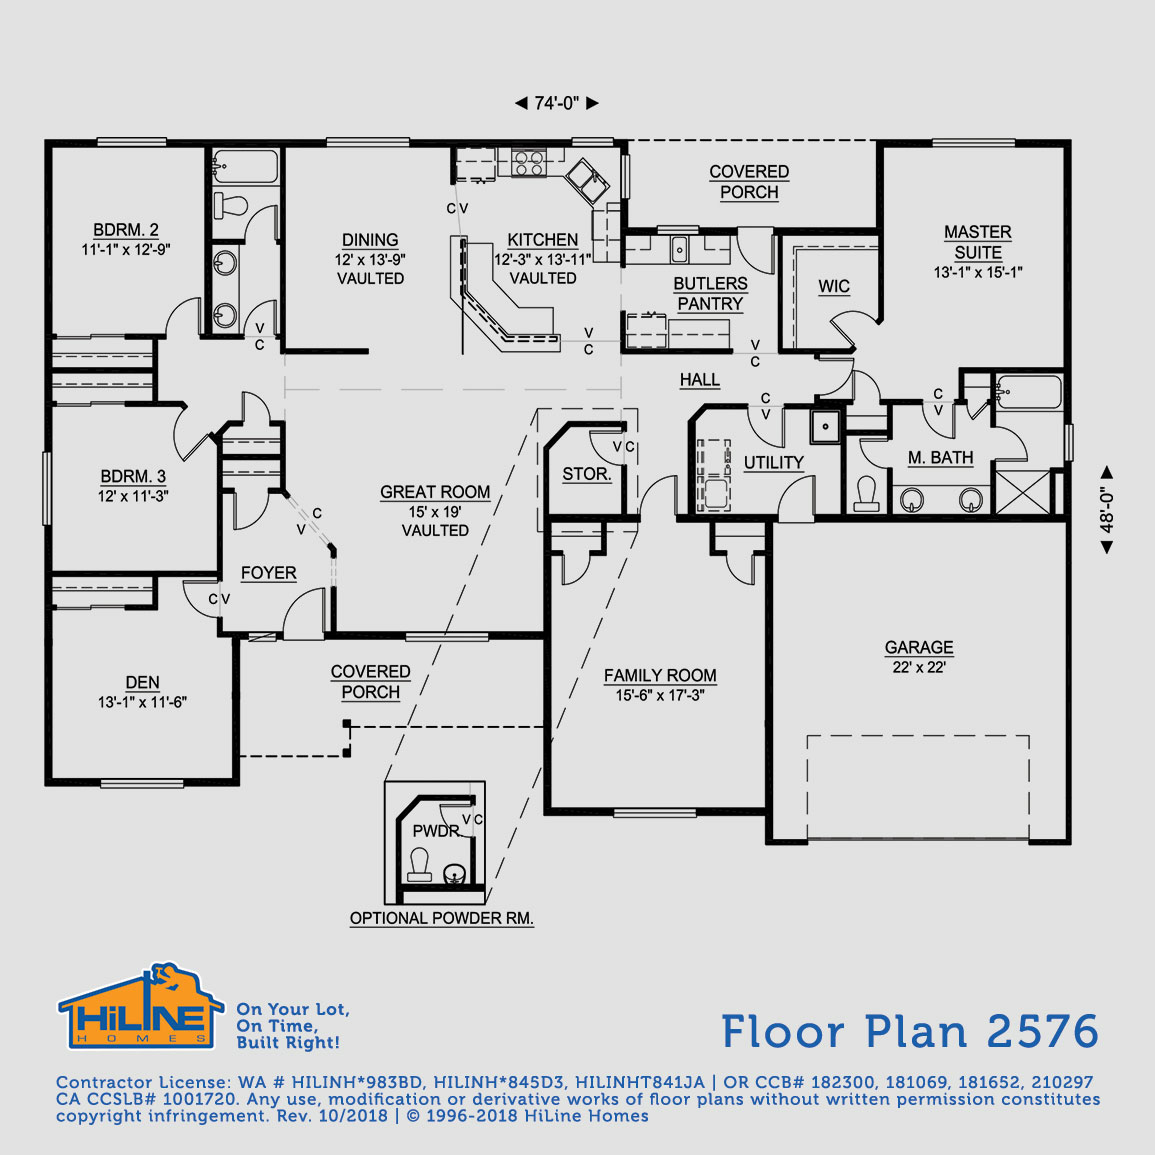 Download PDF View Floorplan ...